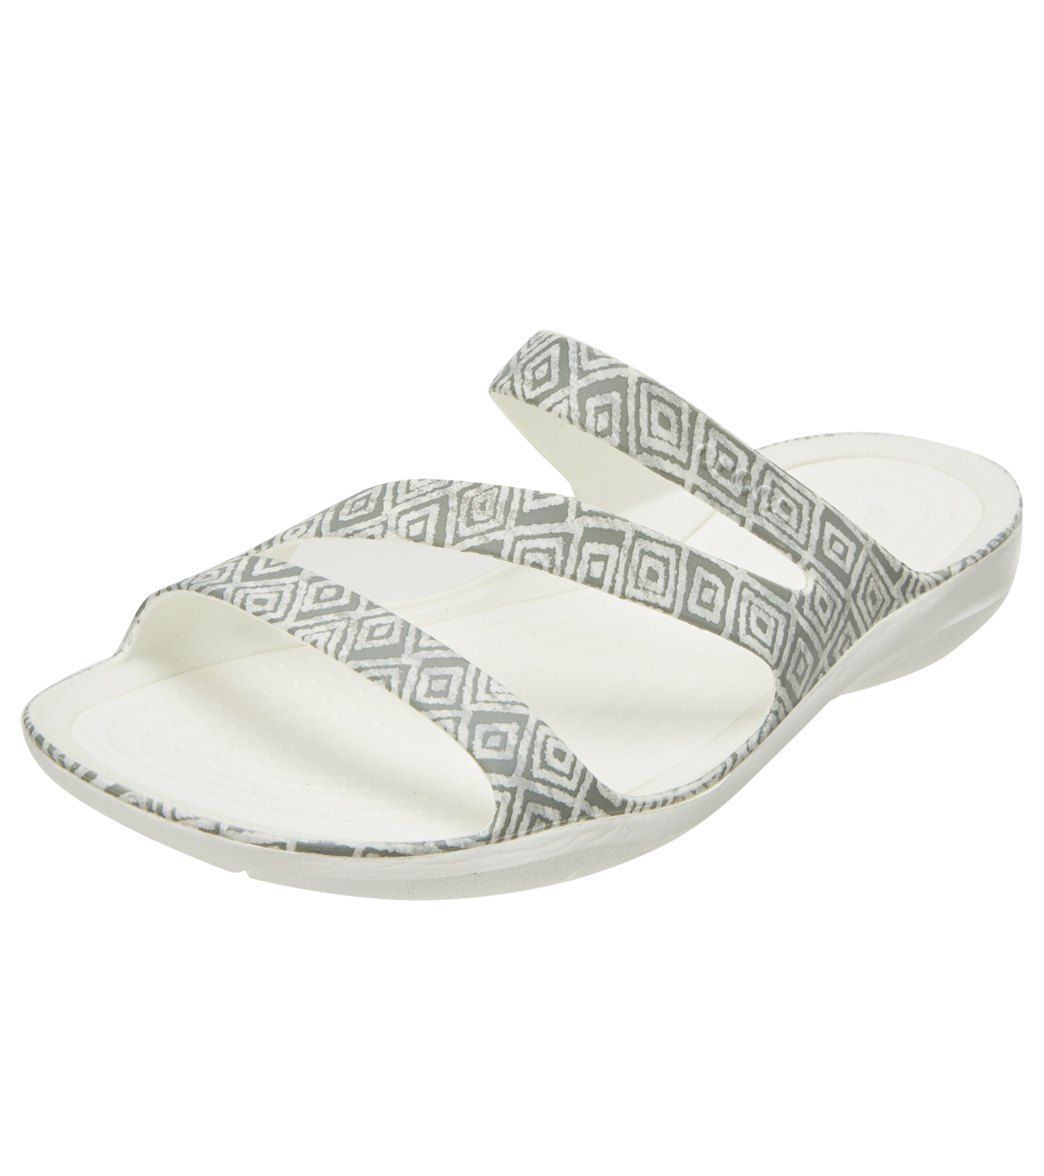 04450ae9883e75 Crocs Women s Swiftwater Graphic Sandal at SwimOutlet.com